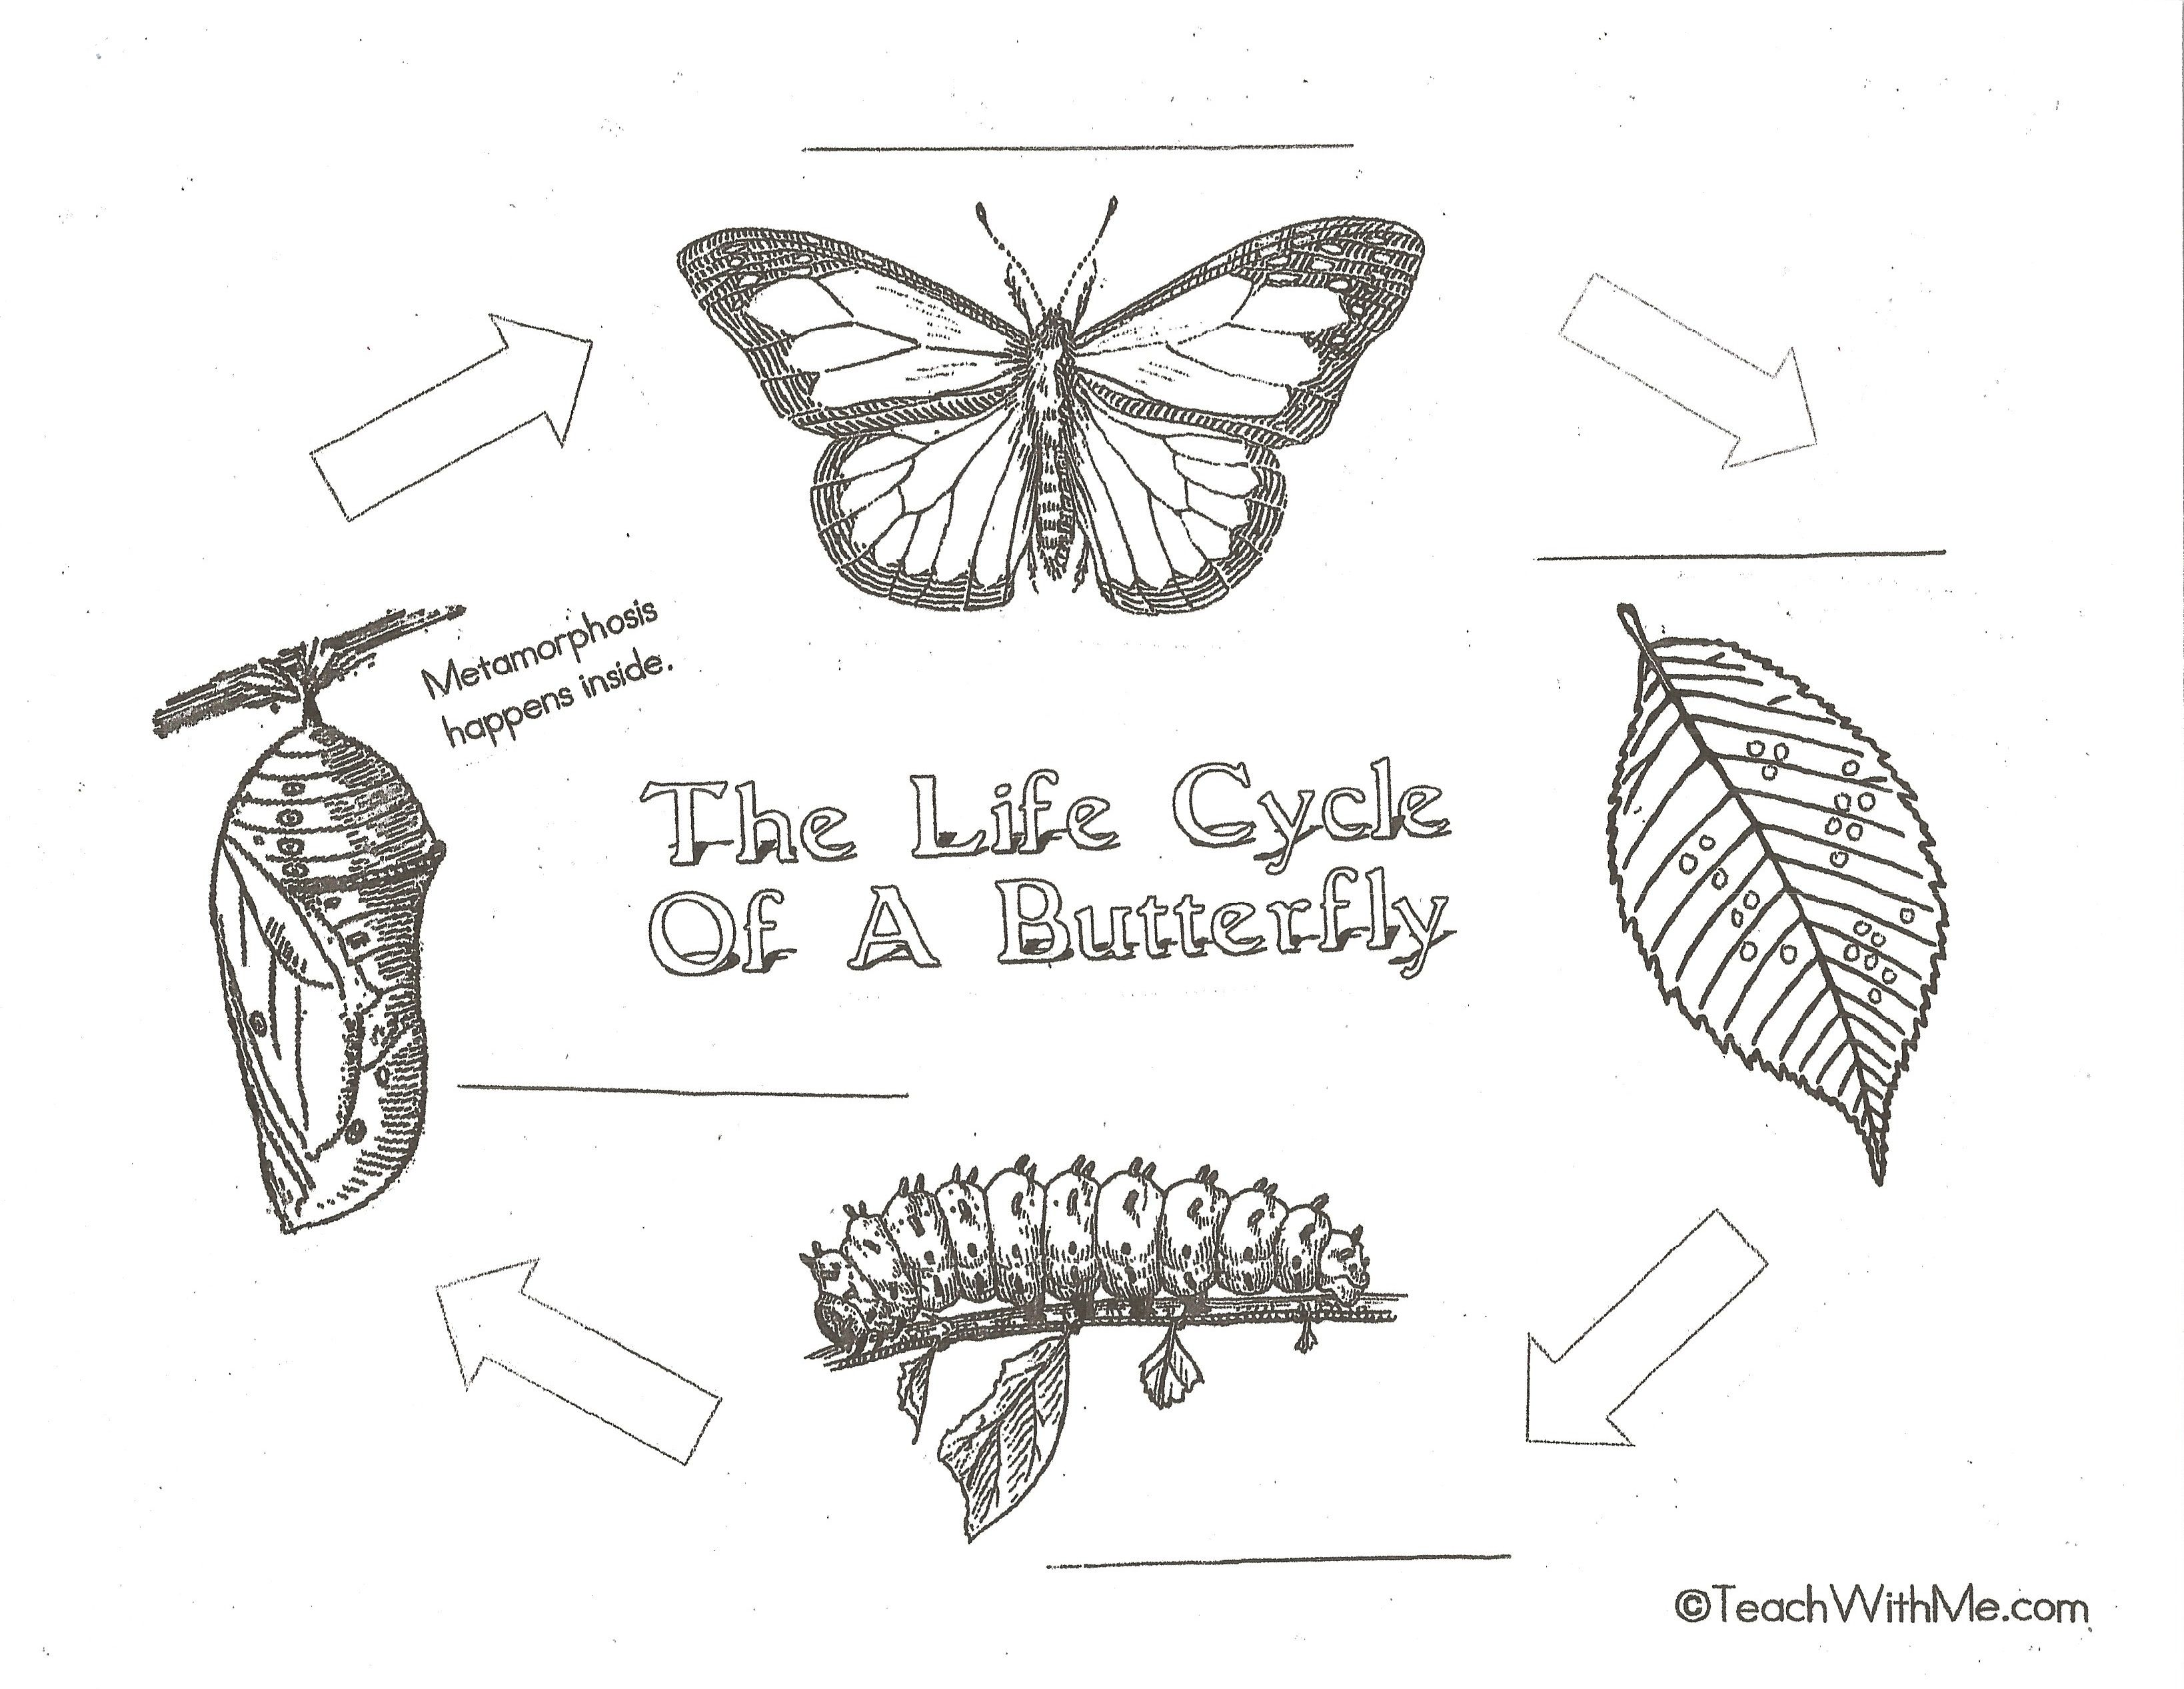 The Life Cycle Of A Butterfly Activities Butterfly Life Cycle